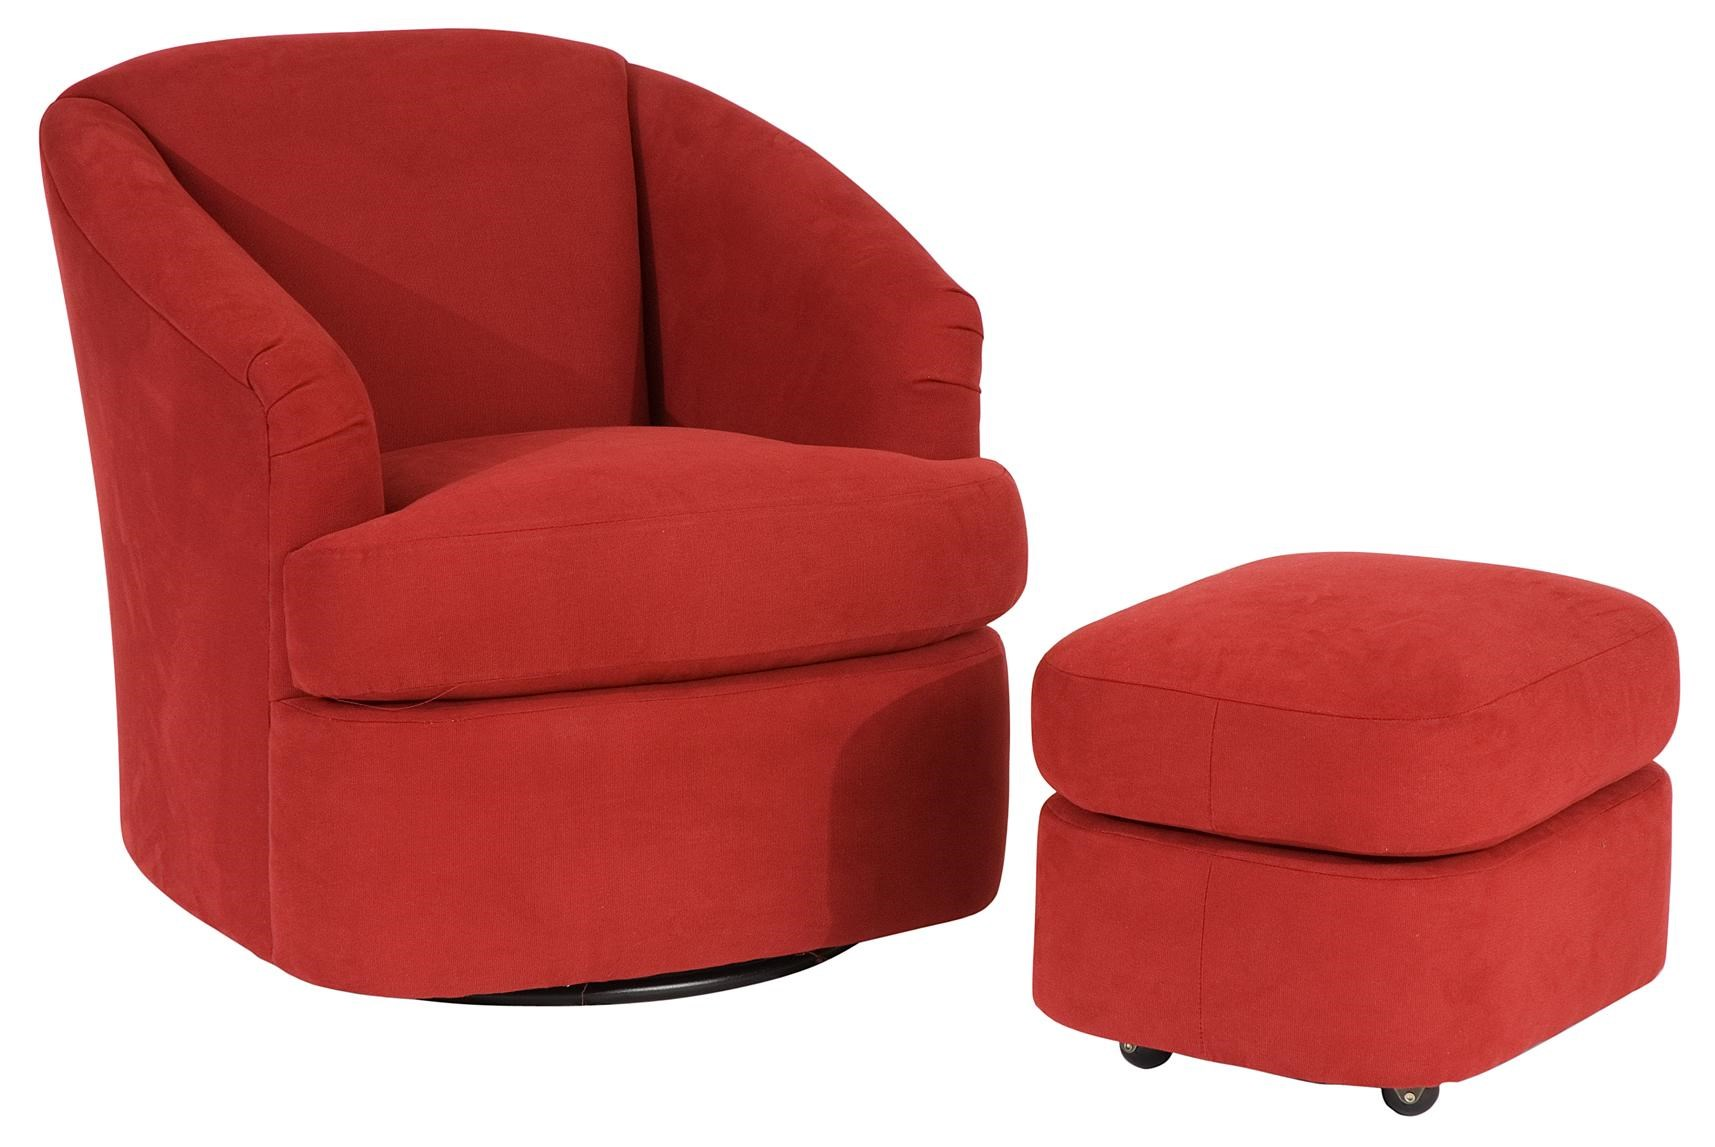 Smith Brothers Smith Brothers Contemporary Swivel Barrel Chair And Ottoman  With Casters | Saugerties Furniture Mart | Chair U0026 Ottoman Sets